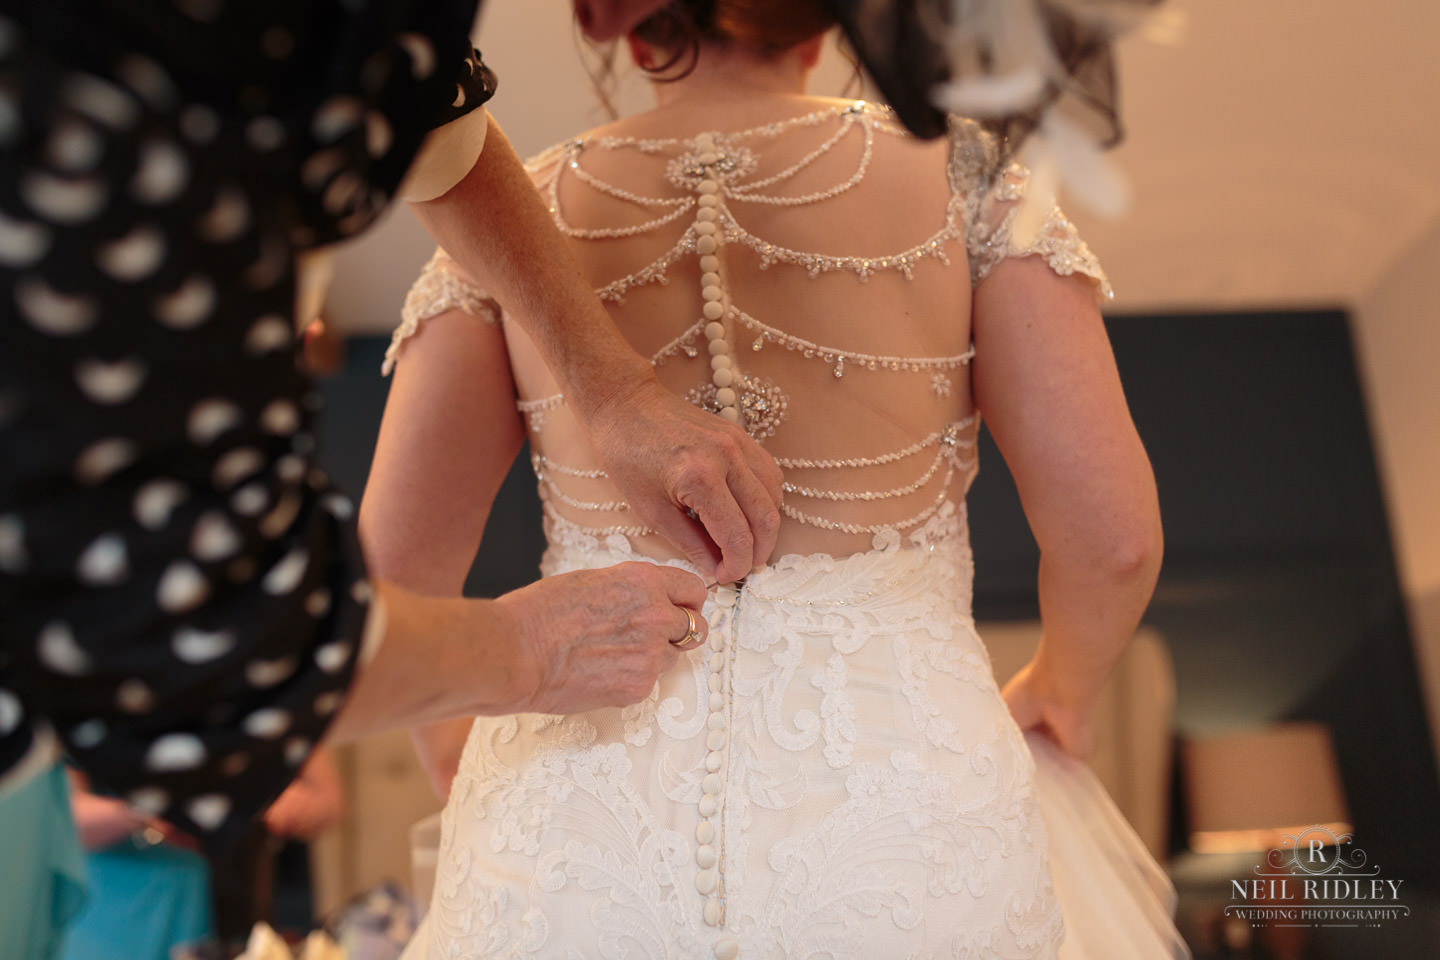 Mother of the Bride fastens the back of the Bride's wedding dress during Bridal Prep at The Mill at Conder Green